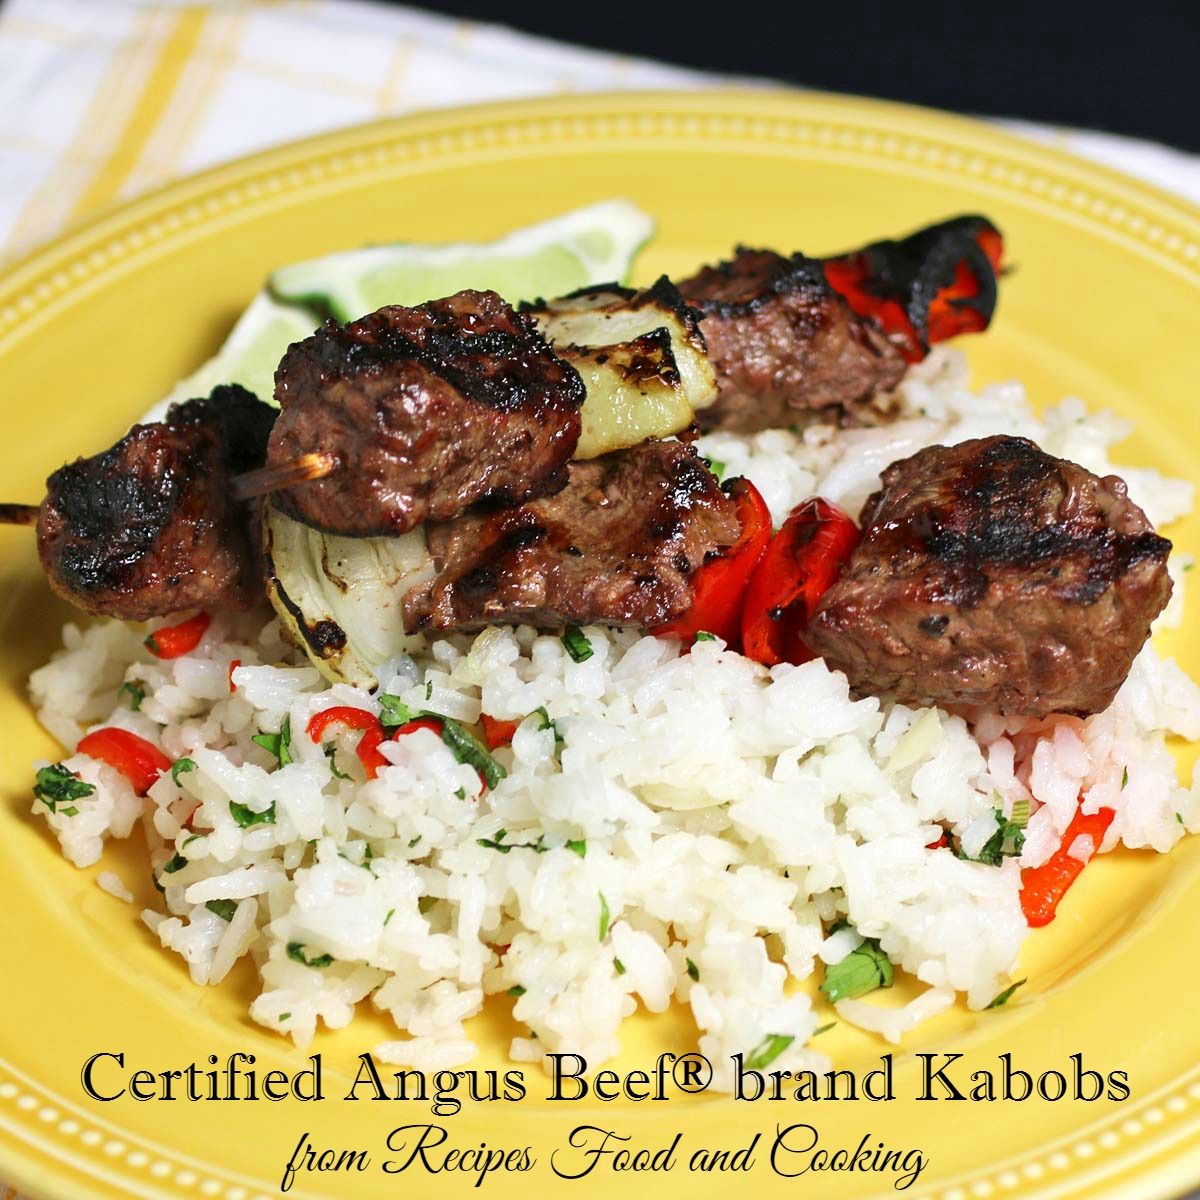 Certified Angus Beef® brand Kabobs